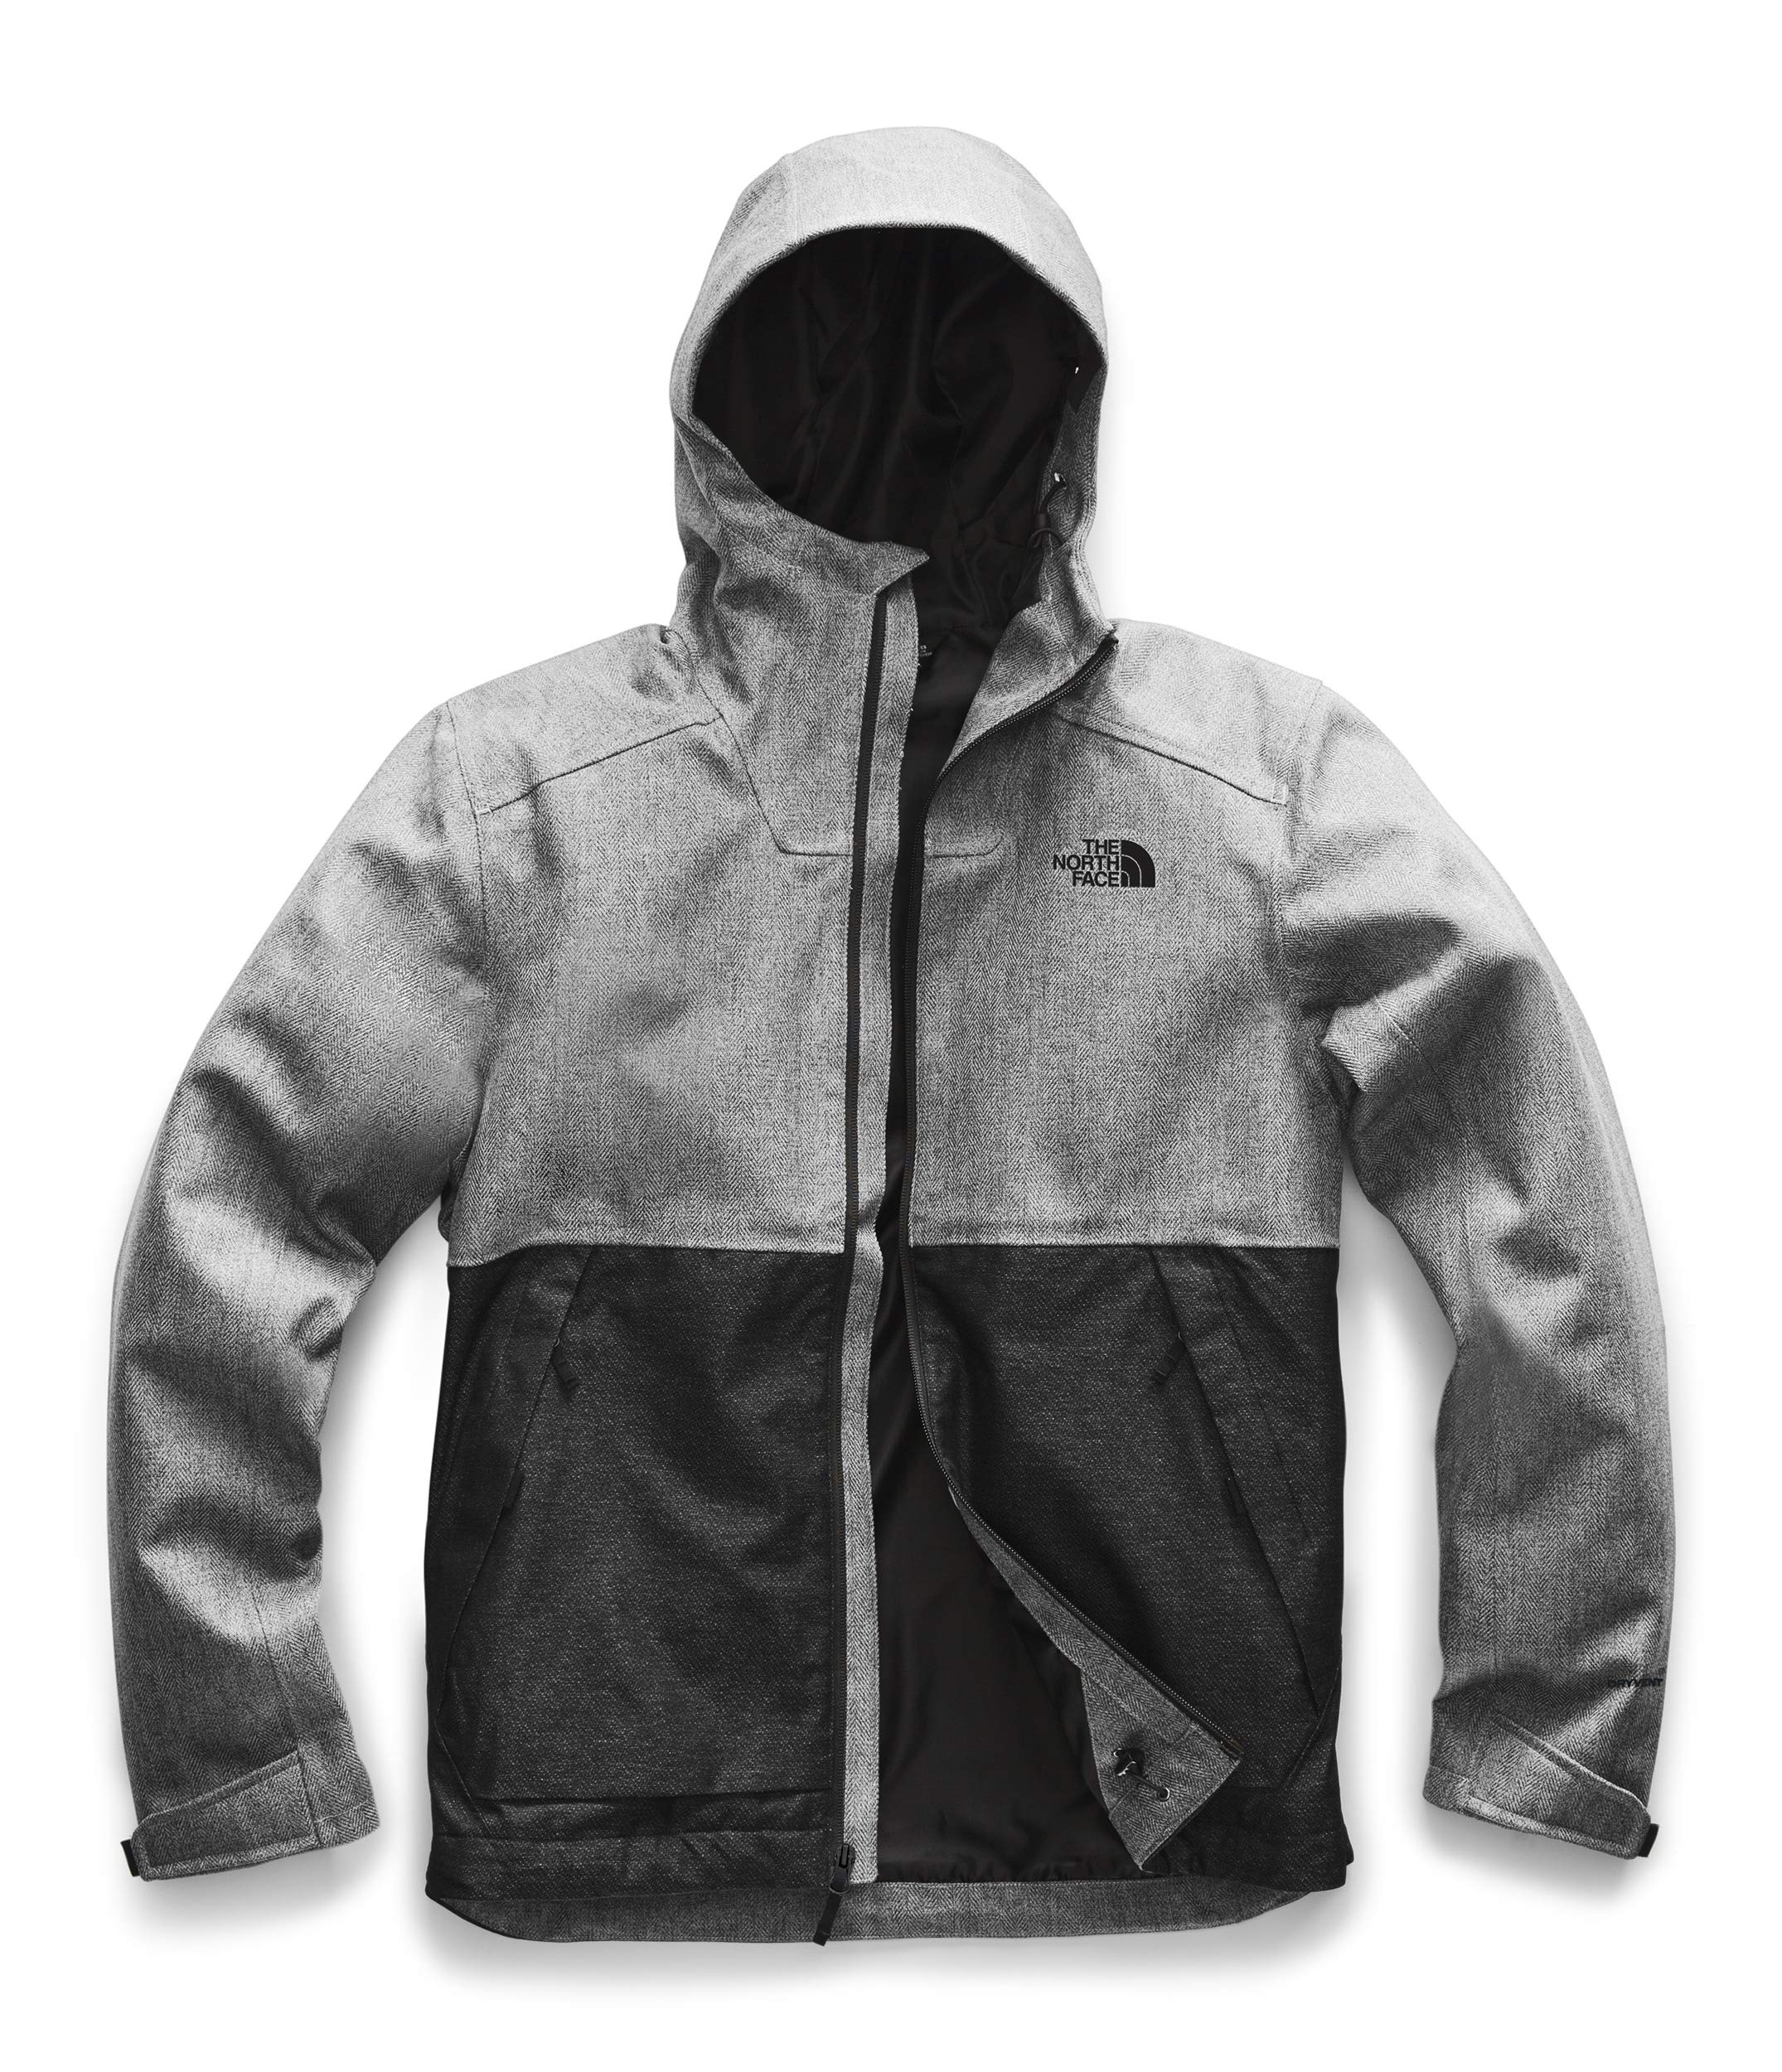 The North Face Men's Millerton Windbreaker Jacket by The North Face